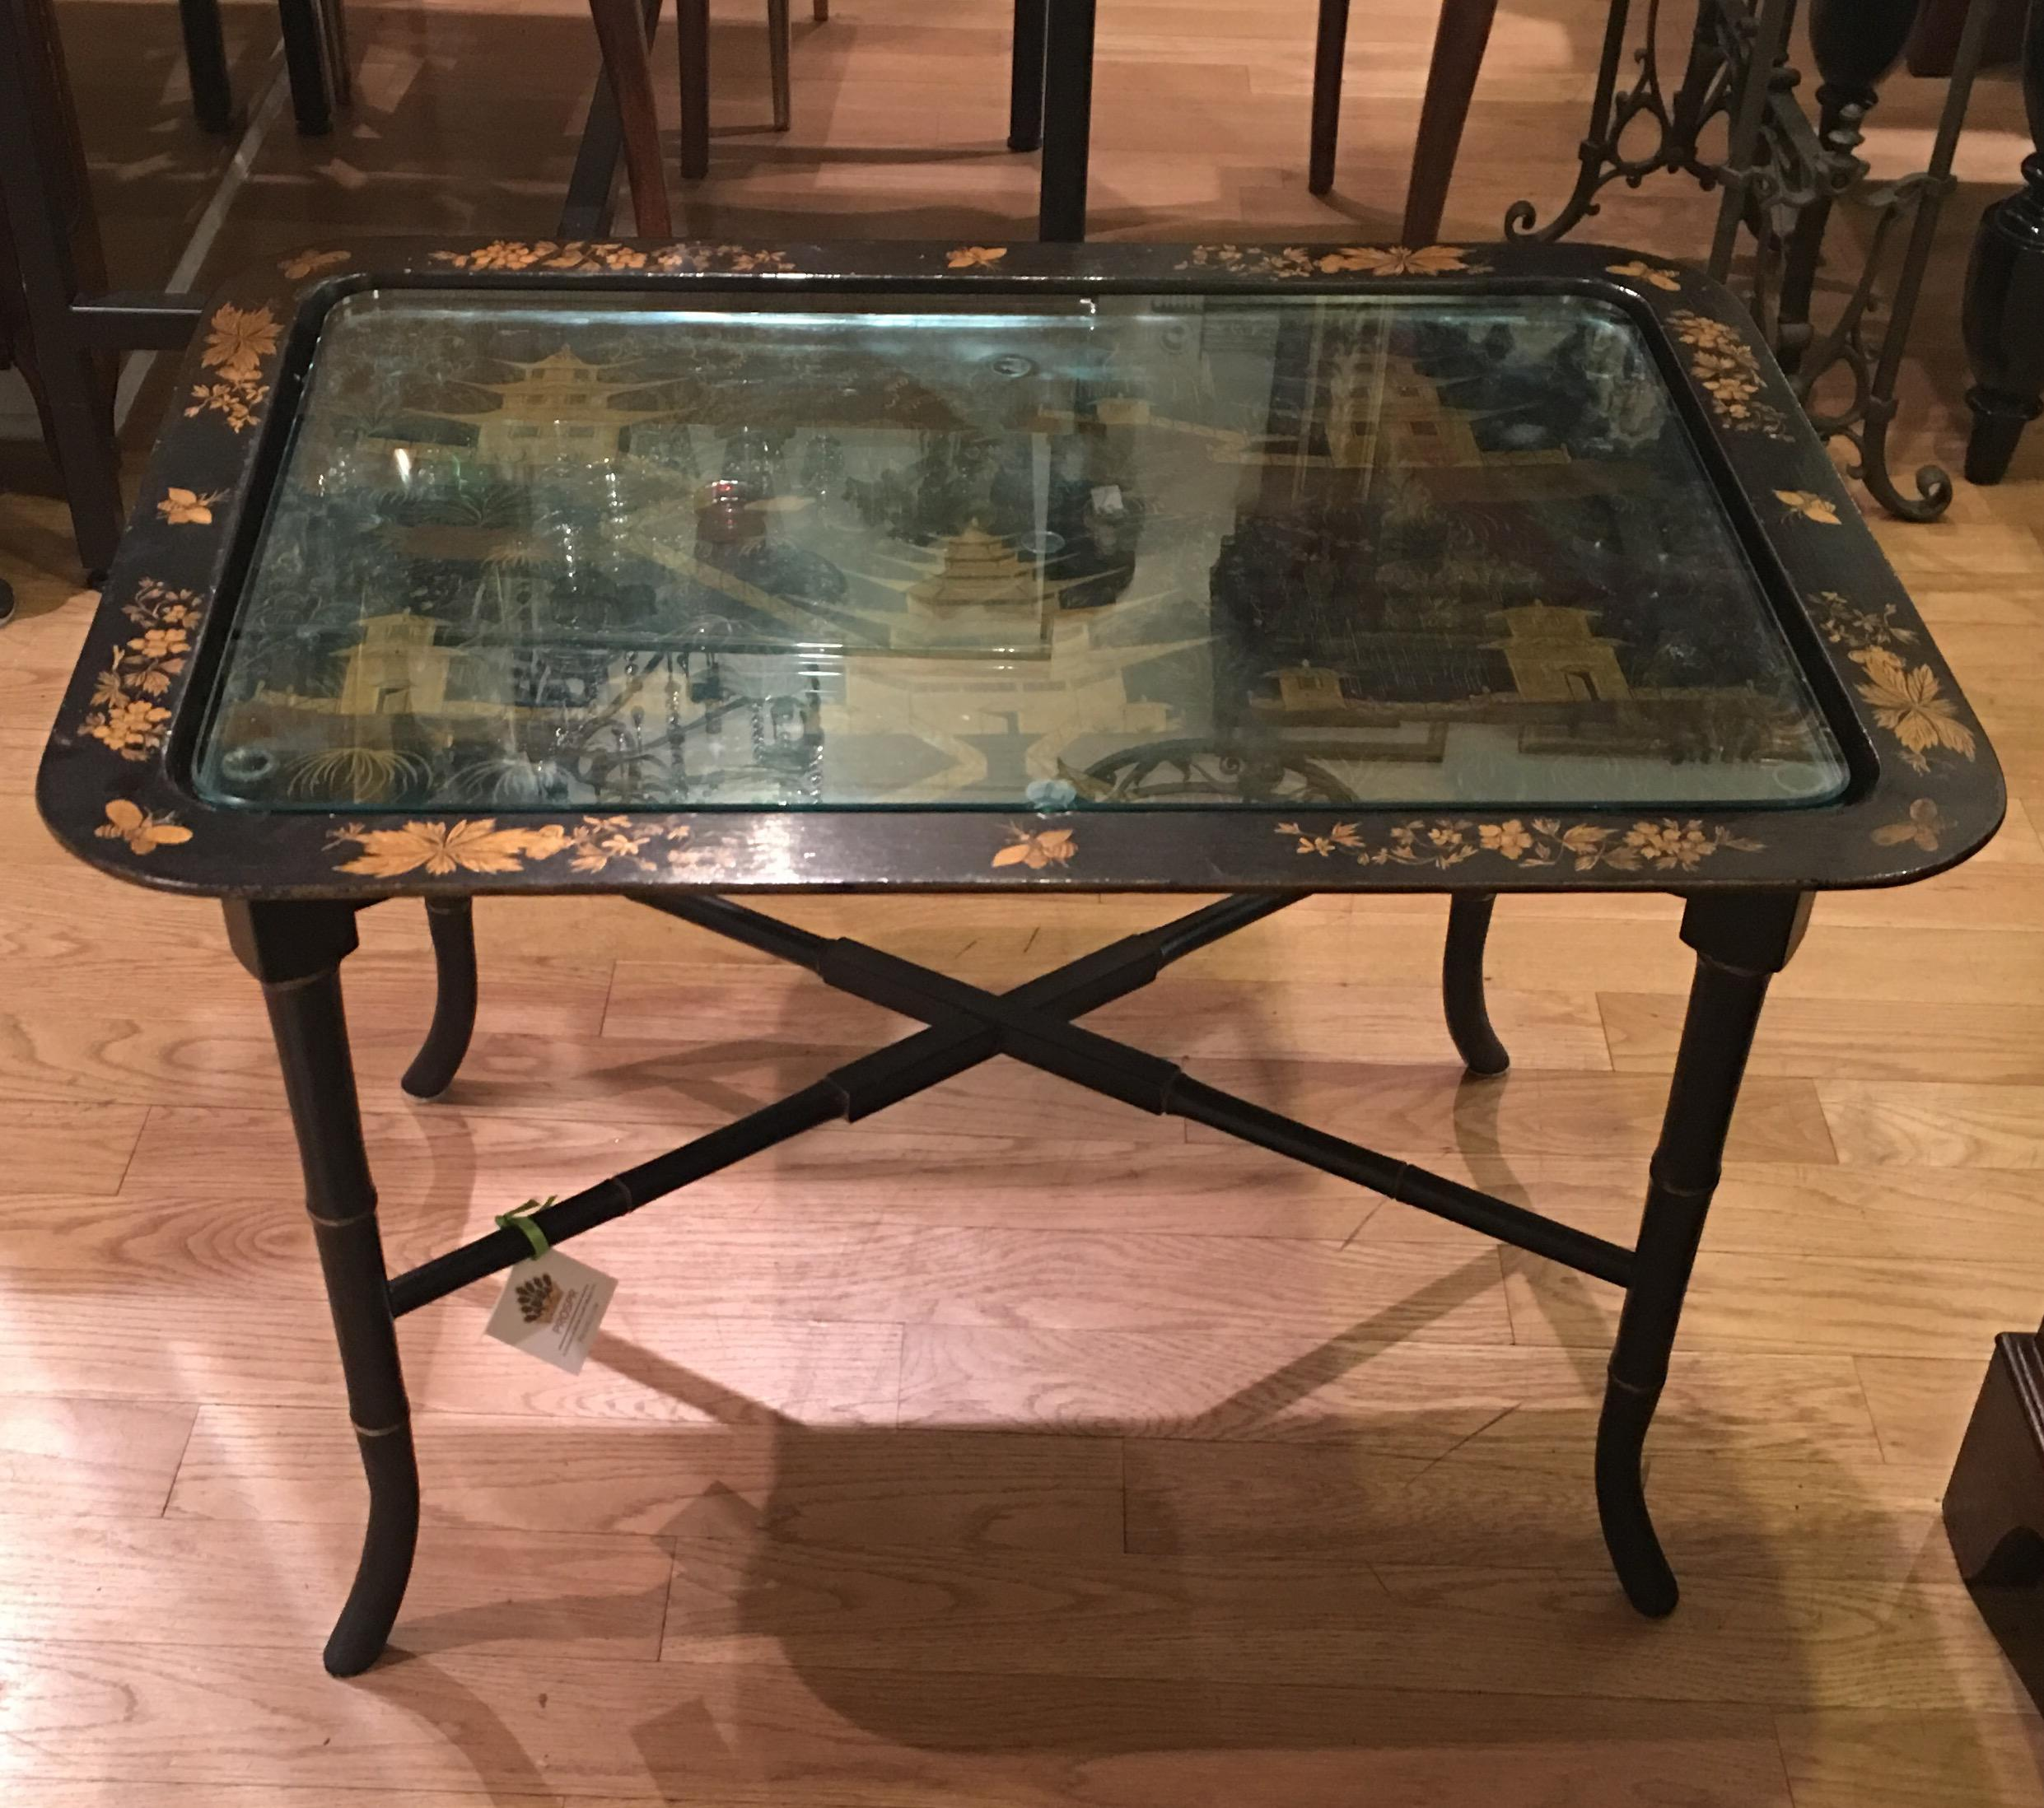 Superieur Vintage Black Lacquer Chinoiserie Decorated End Or Coffee Table   Image 3  Of 6